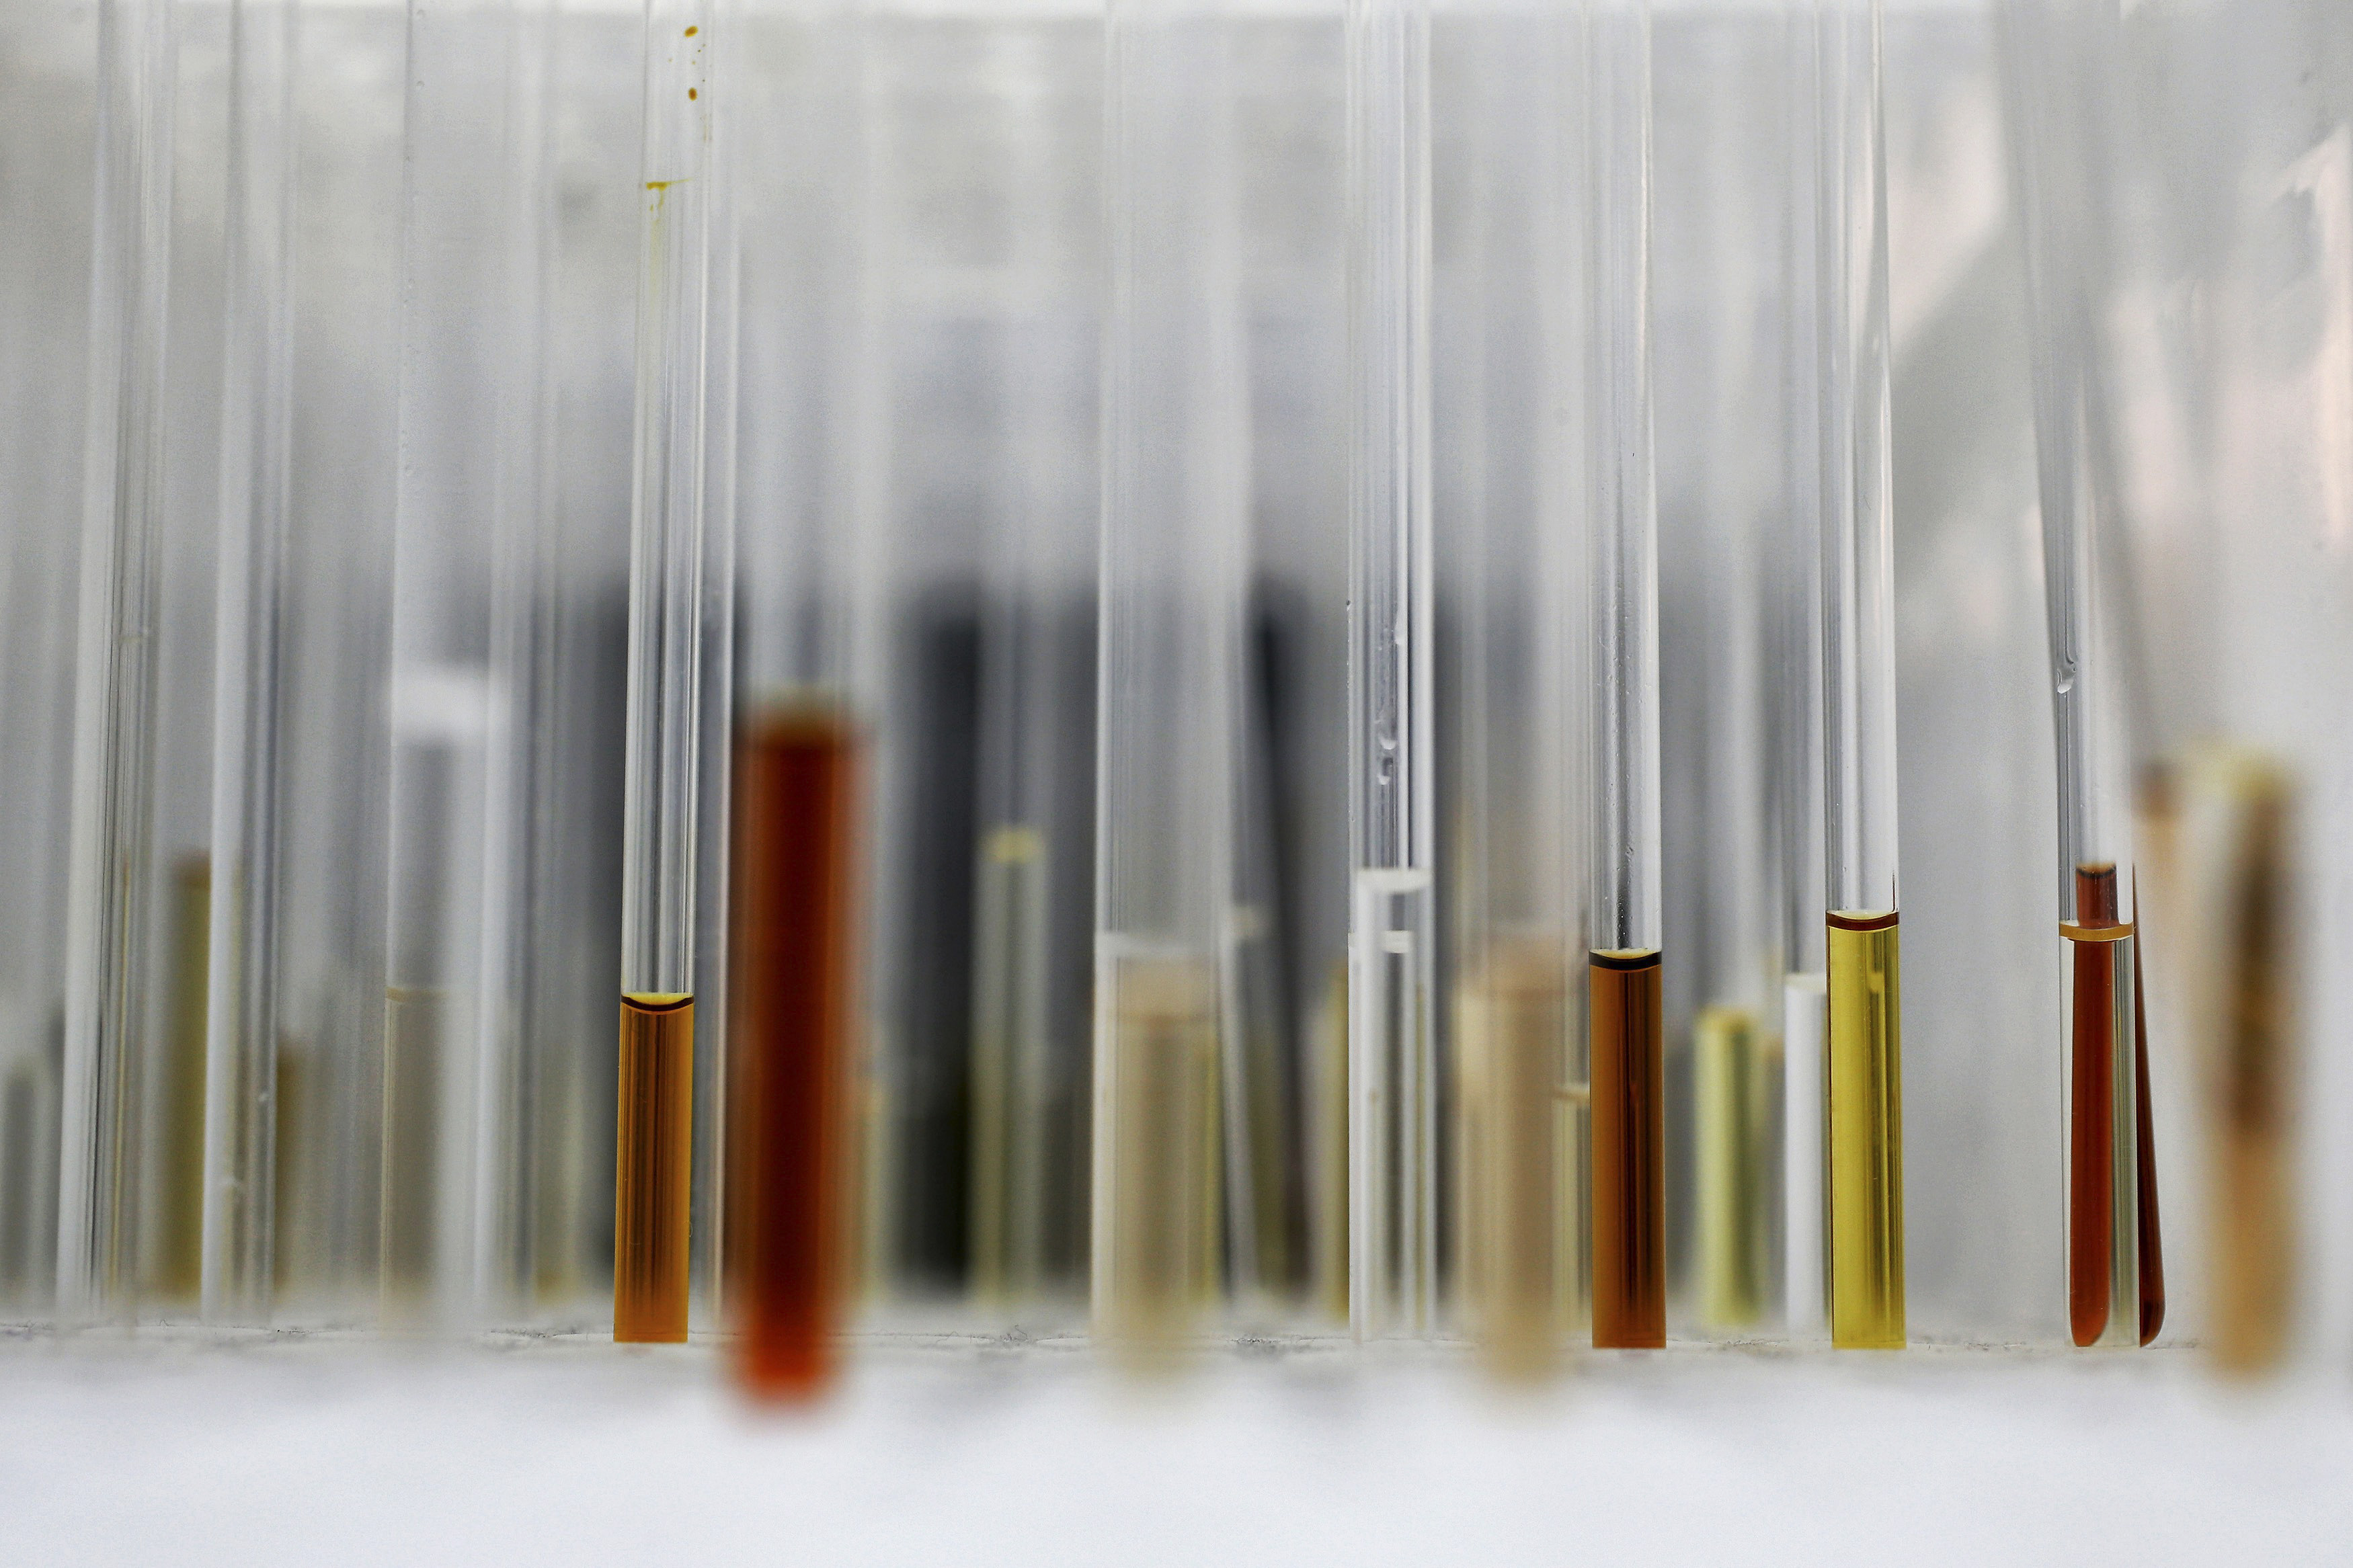 Sample analysis tubes are seen in a lab at the Institute of Cancer Research in Sutton